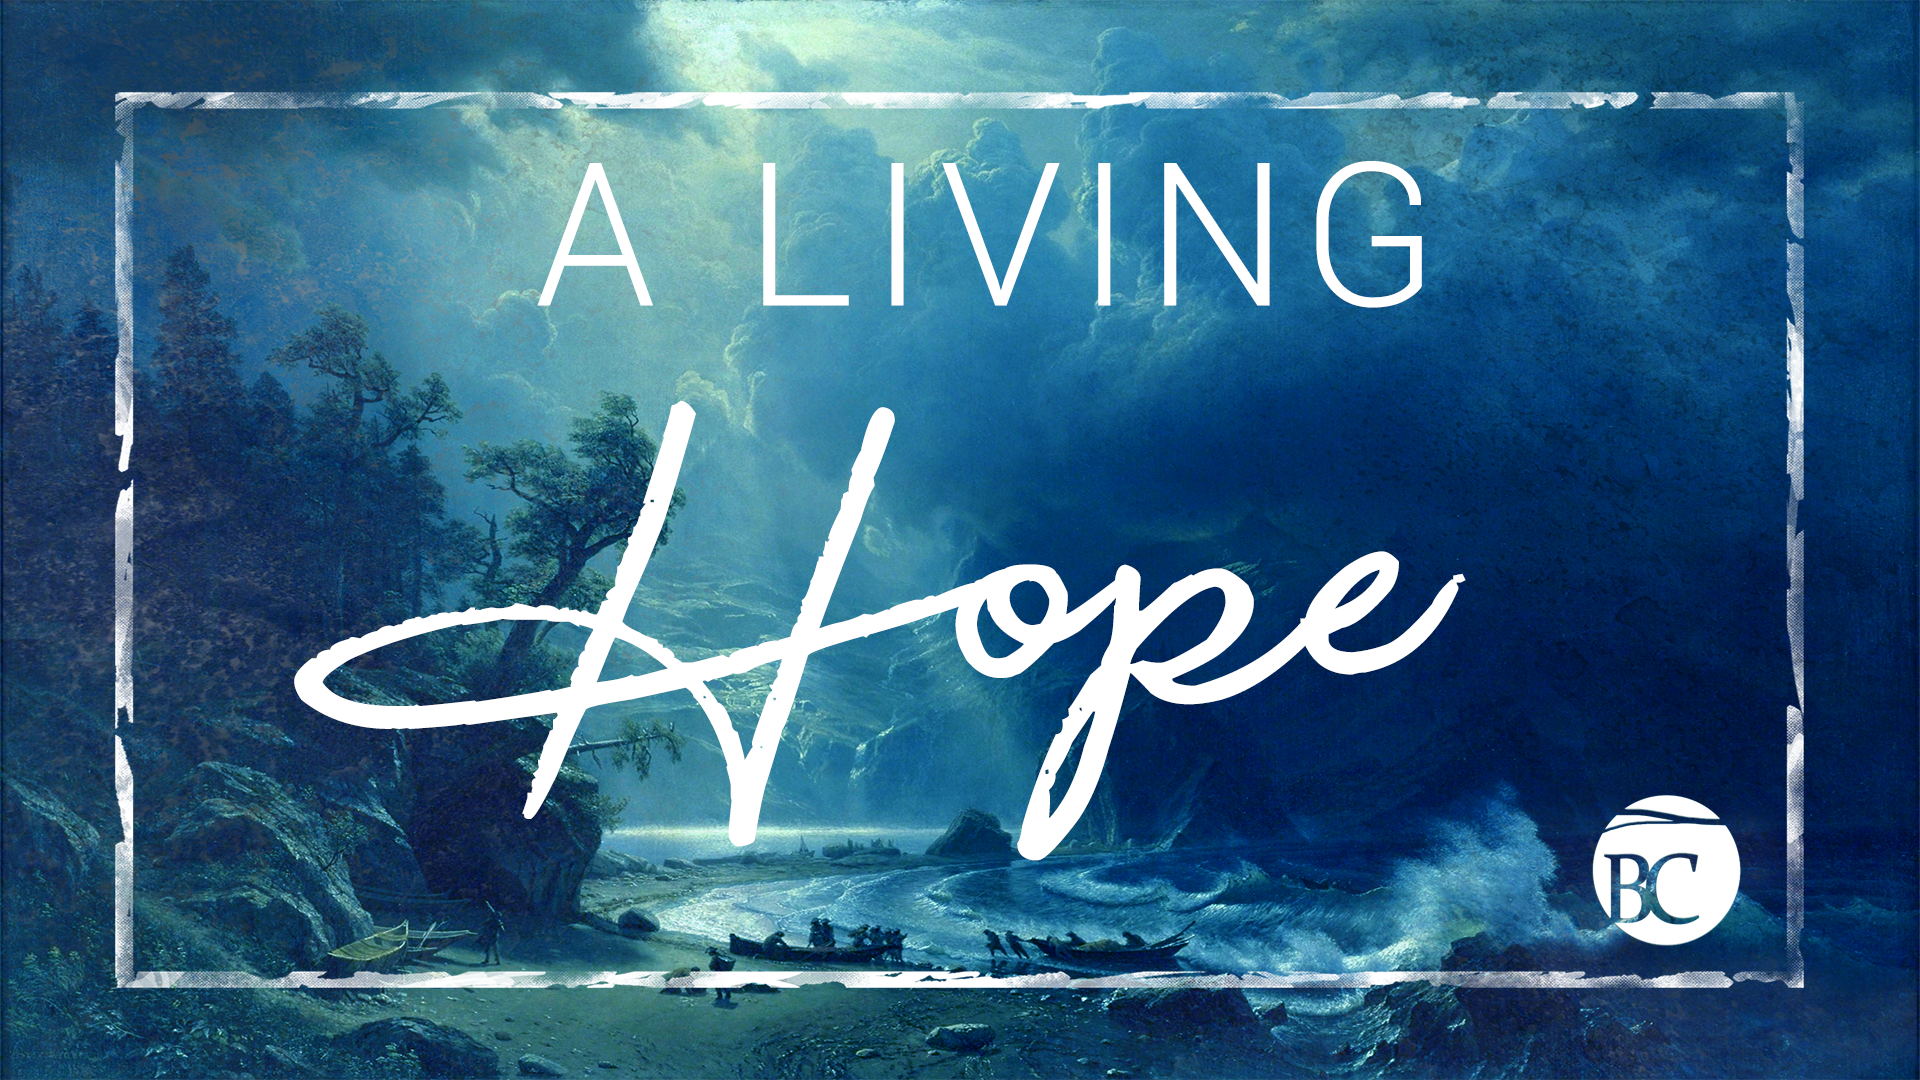 A Living Hope (1920x1080).png